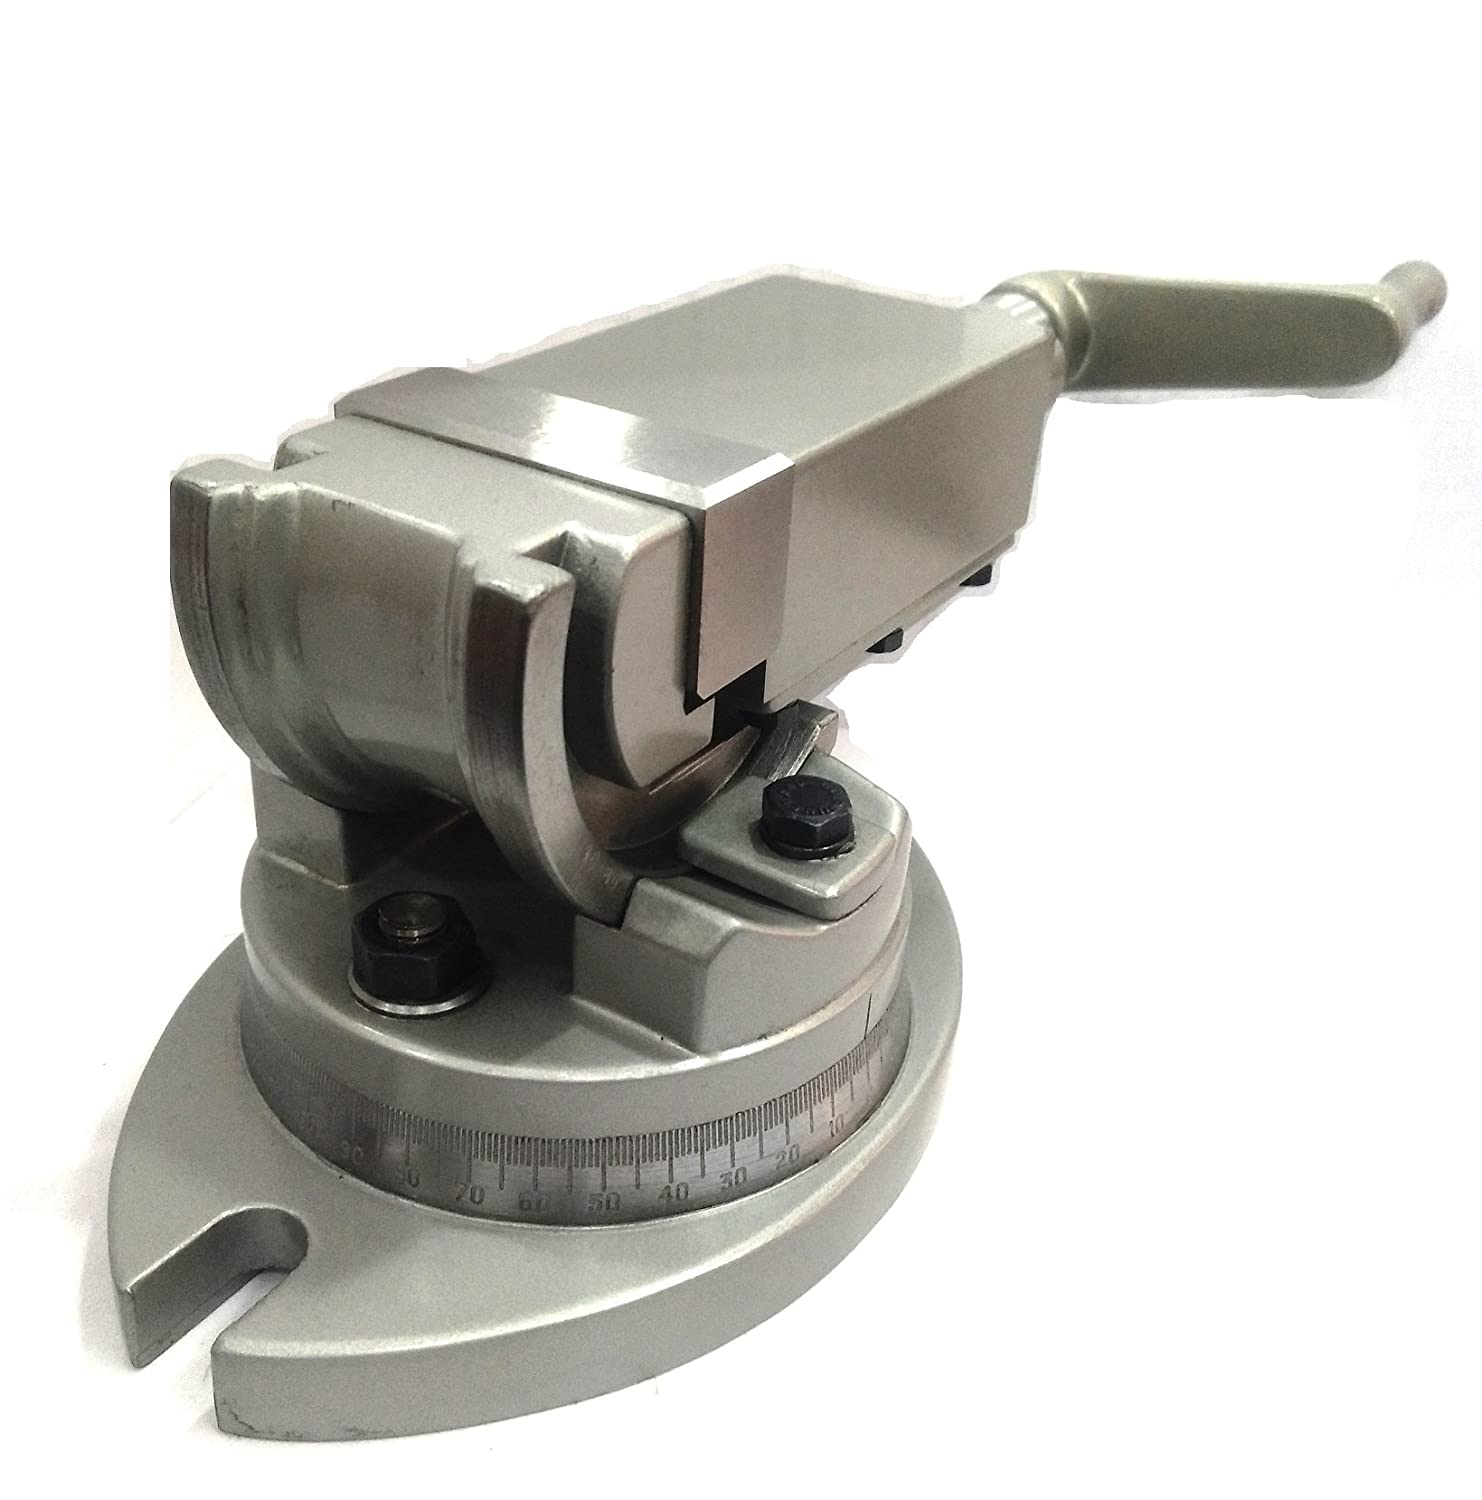 "Precision Milling Vise Swivel Base /& Angle Tilting 2 way-Jaw 3/"" Inches 75 mm"